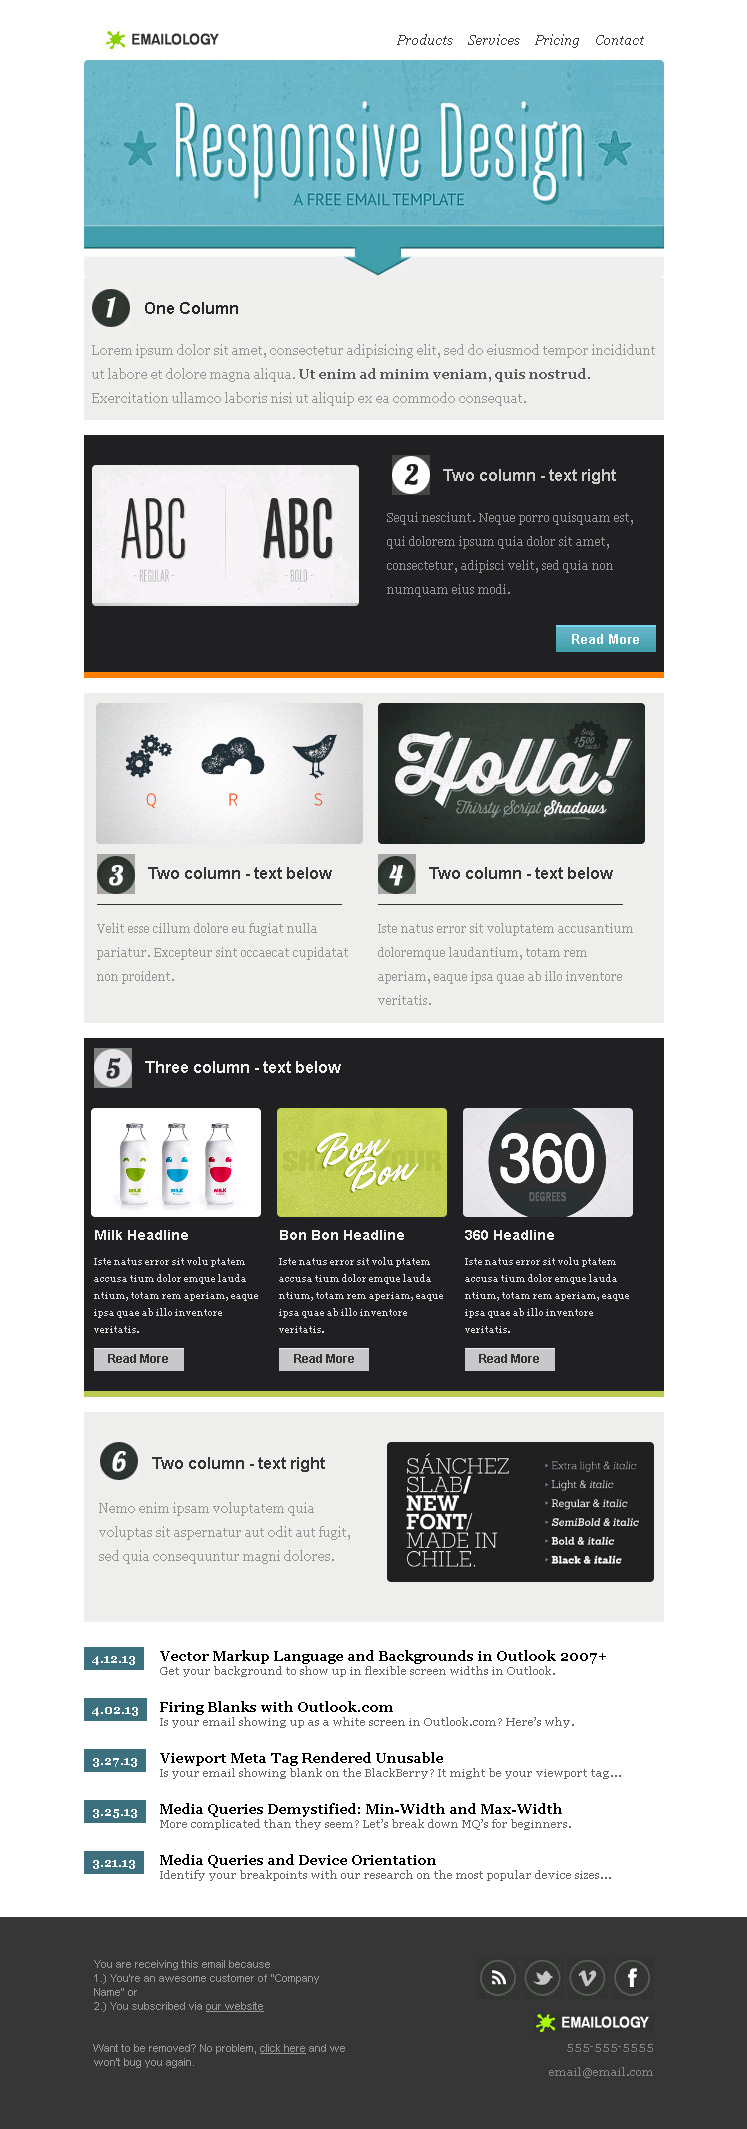 Emailology - Responsive Email Template - Email On Acid